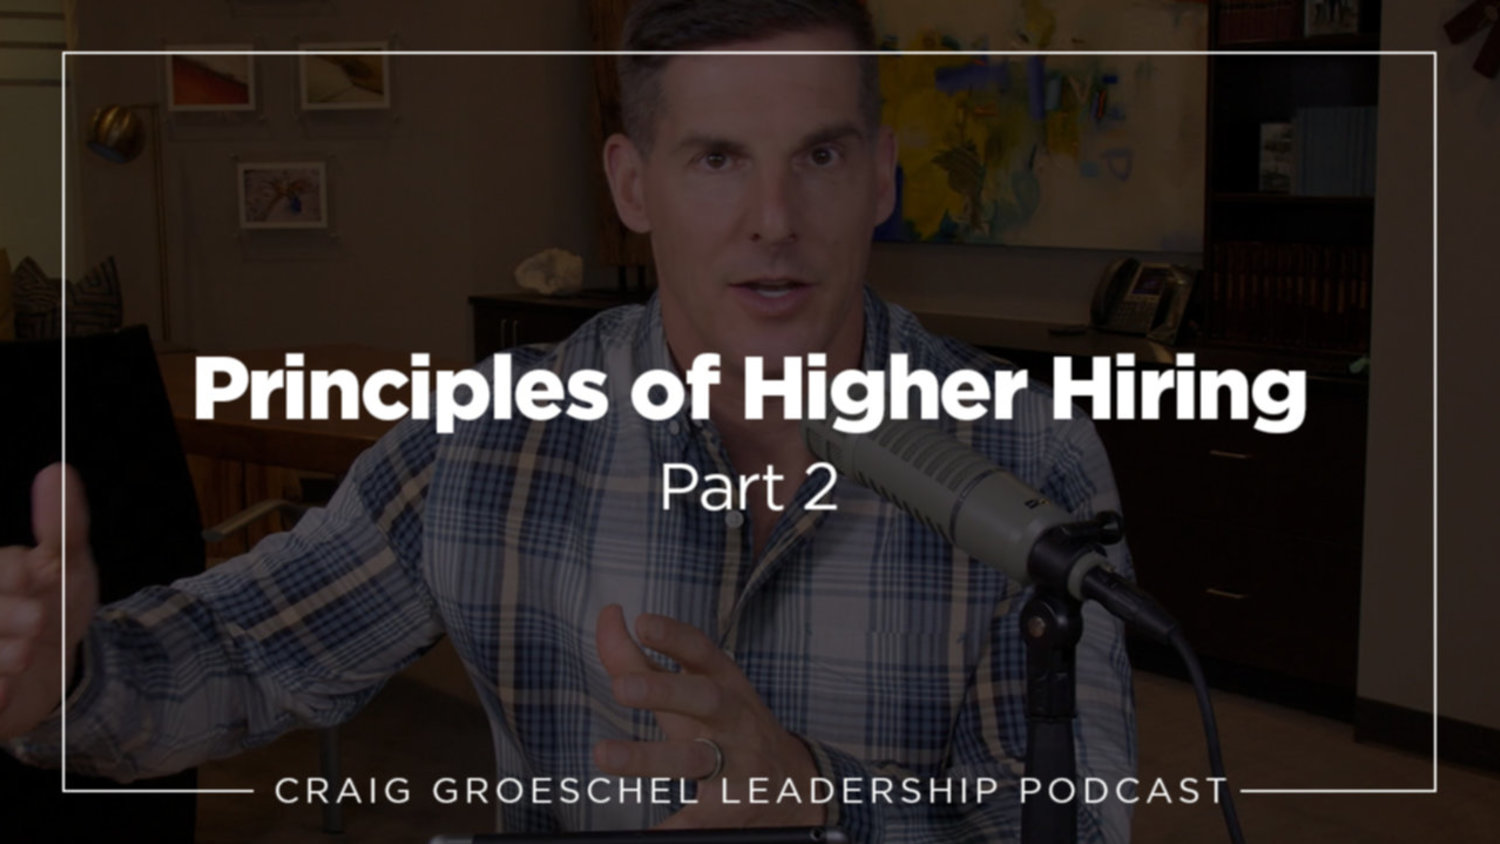 Principles of Higher Hiring, Part 2